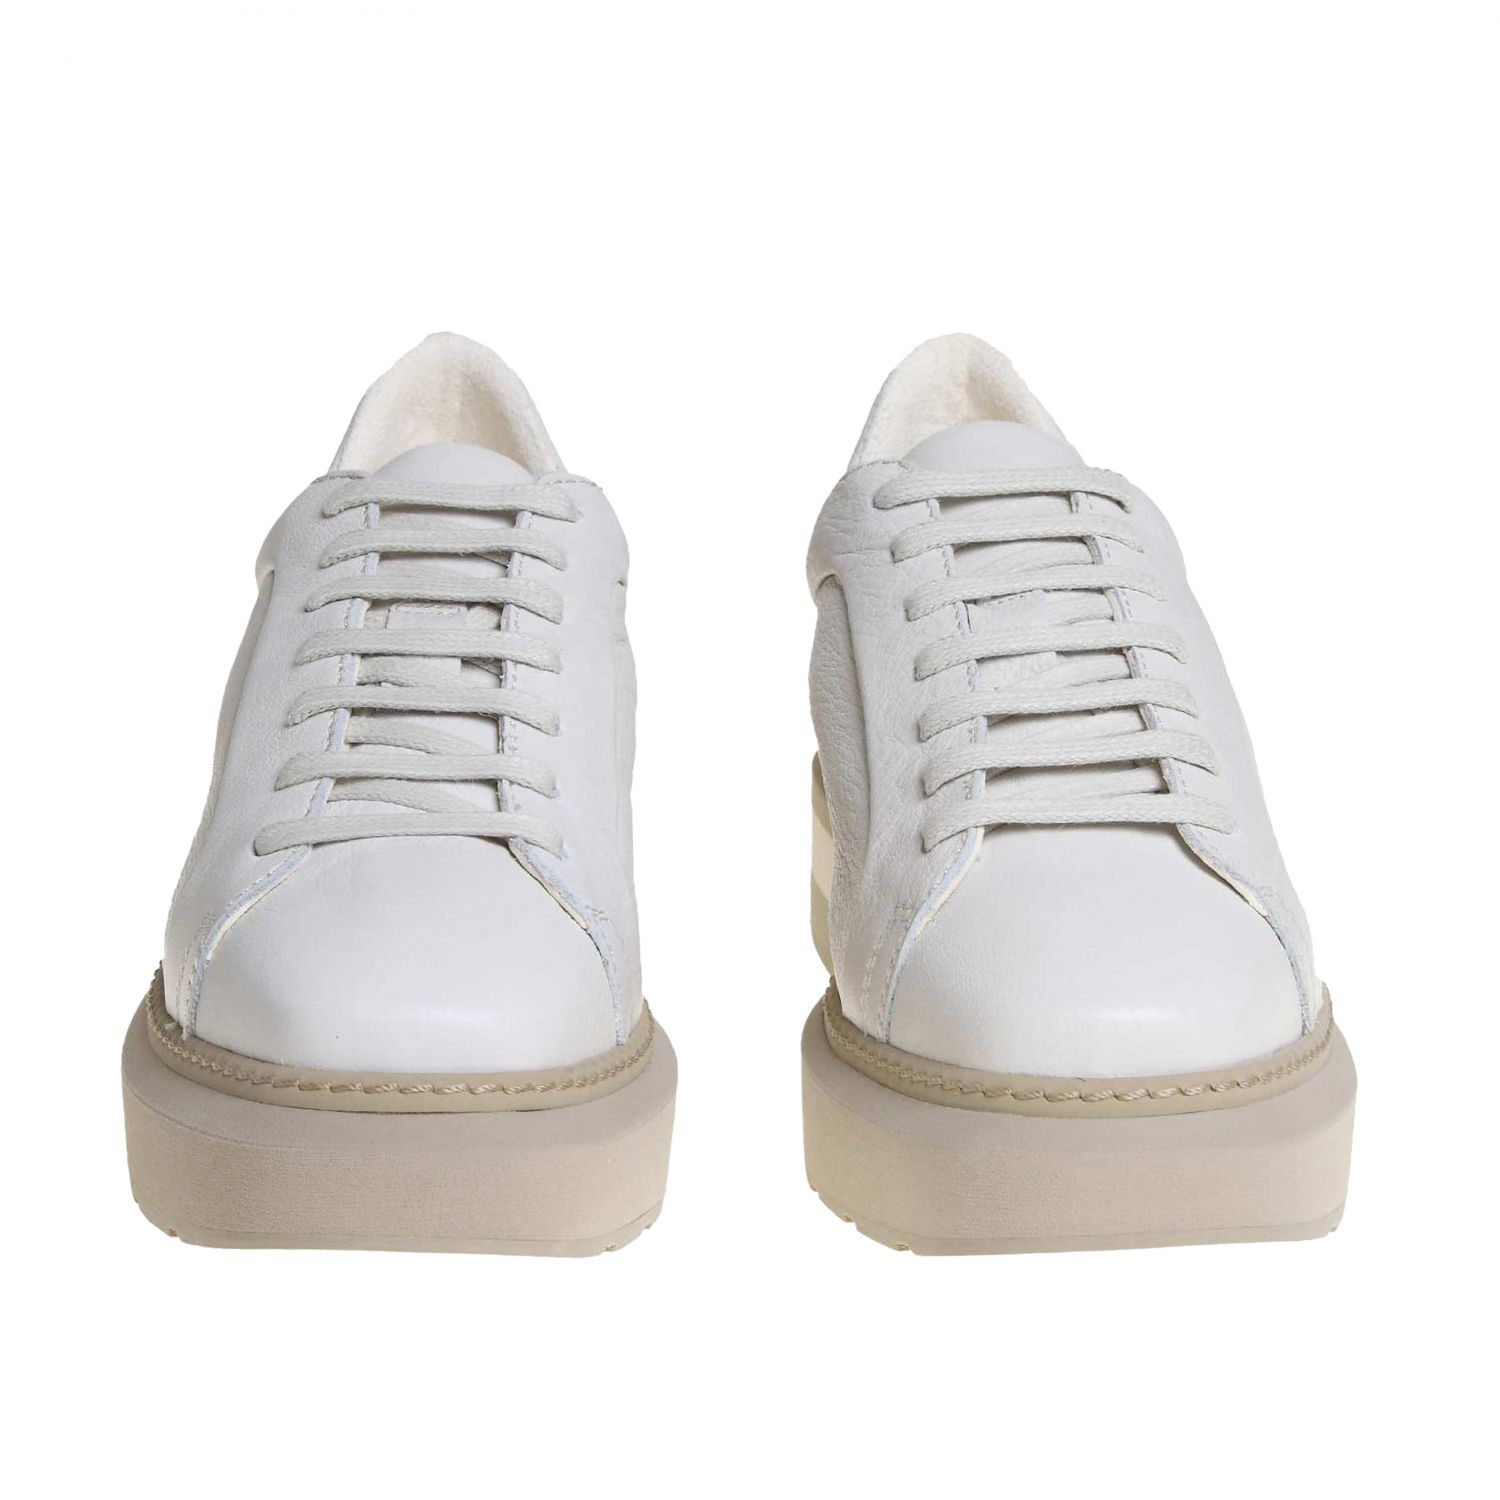 Sneakers Manuel Barcelò: Sneakers women Manuel BarcelÒ white 3